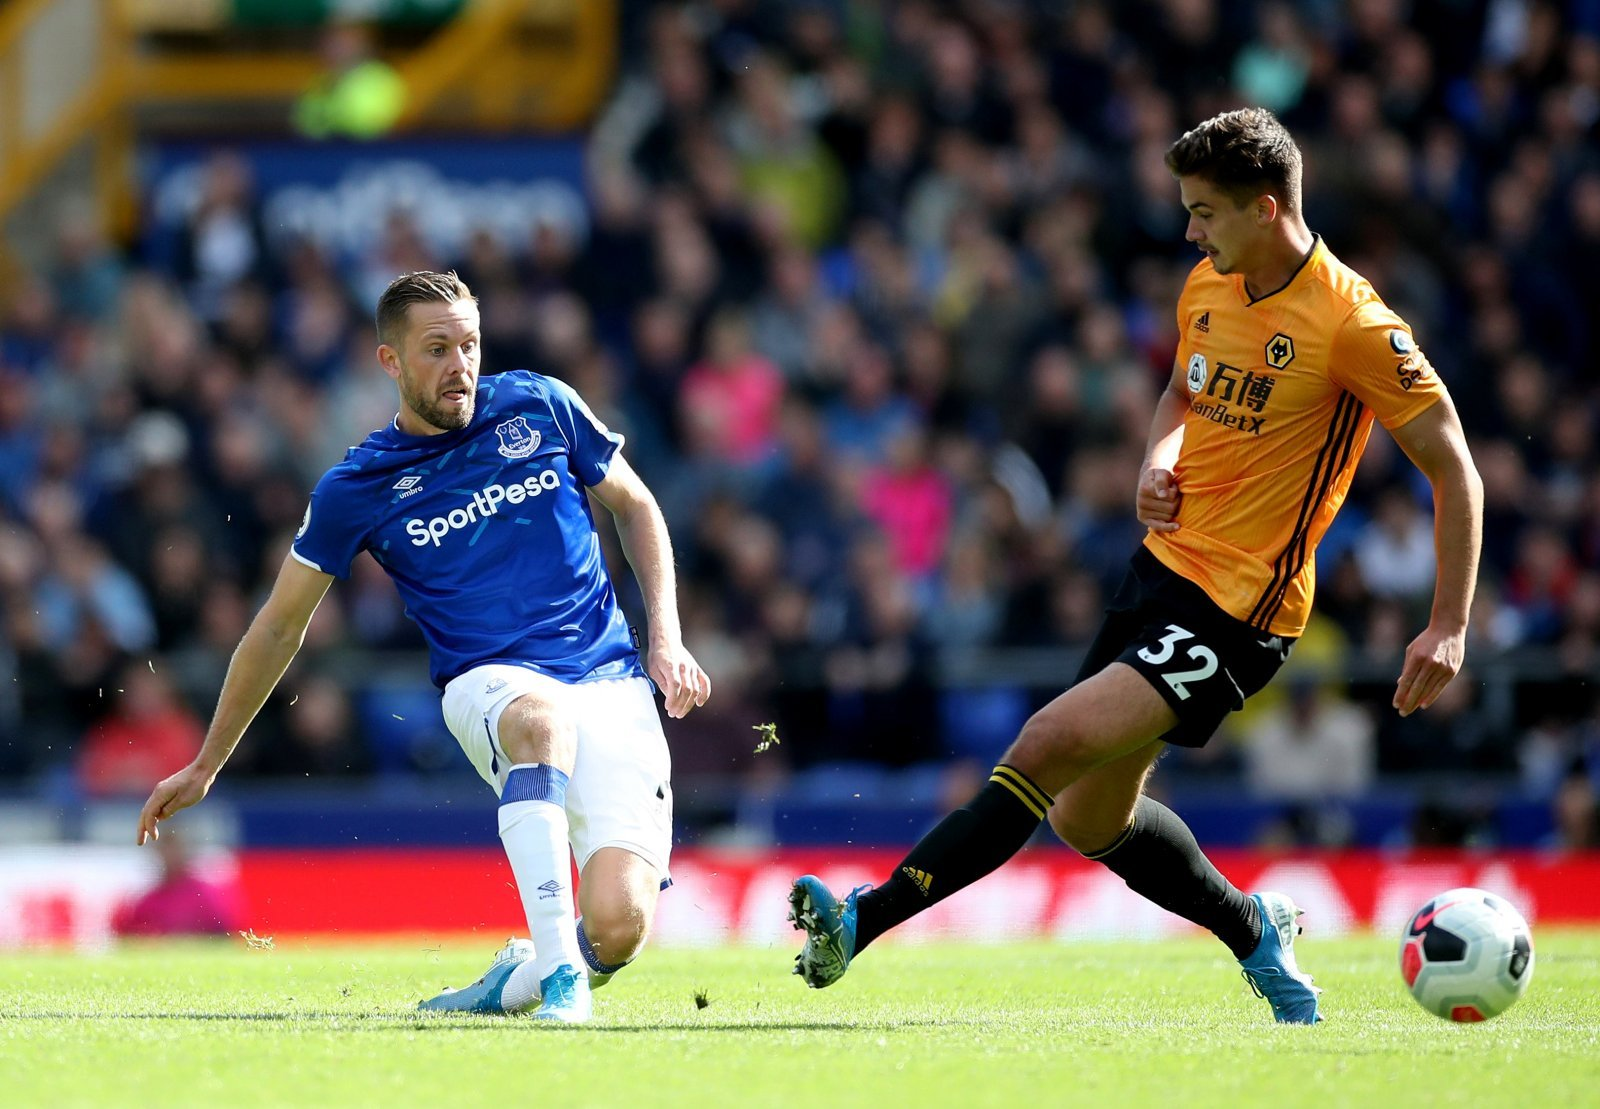 Wolves: Leander Dendoncker cited by sporting director as example for club's newcomers to follow